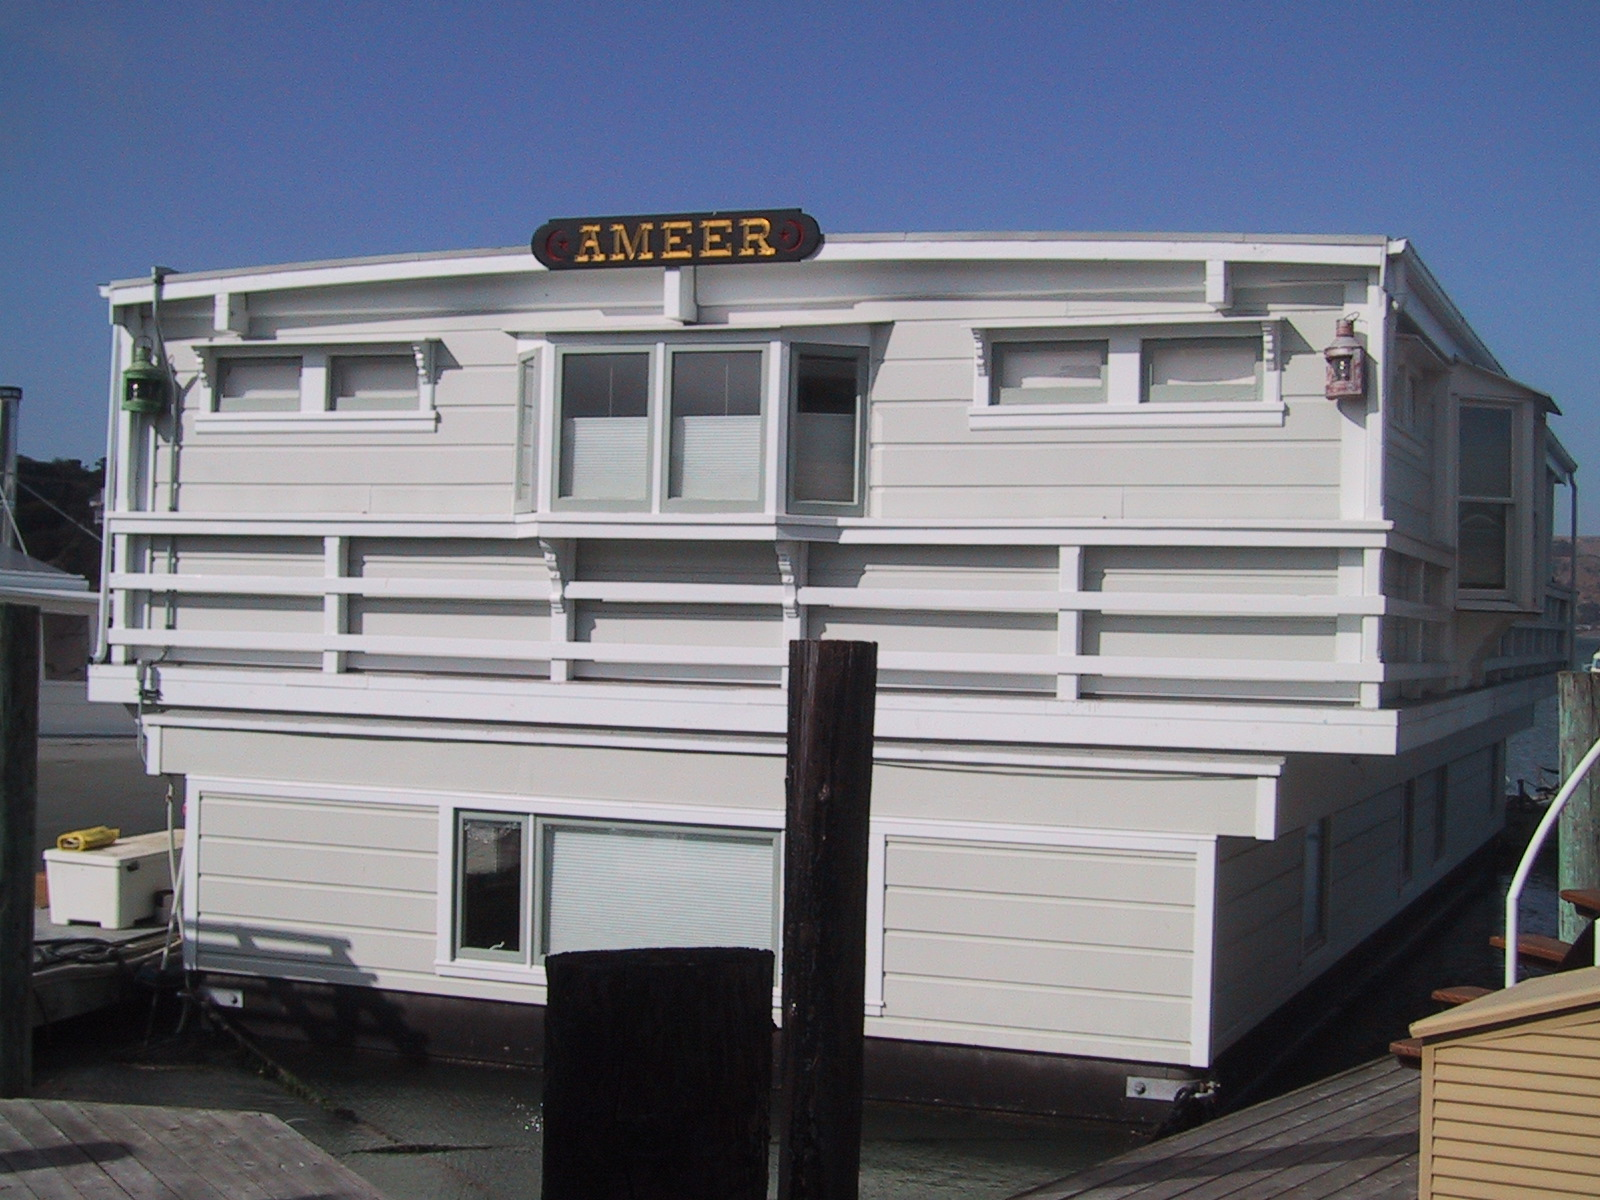 PHOTO COURTESY OF FLOATING HOMES ASSOCIATION  The Ameer as it looked during the 2014 Floating Homes Tour